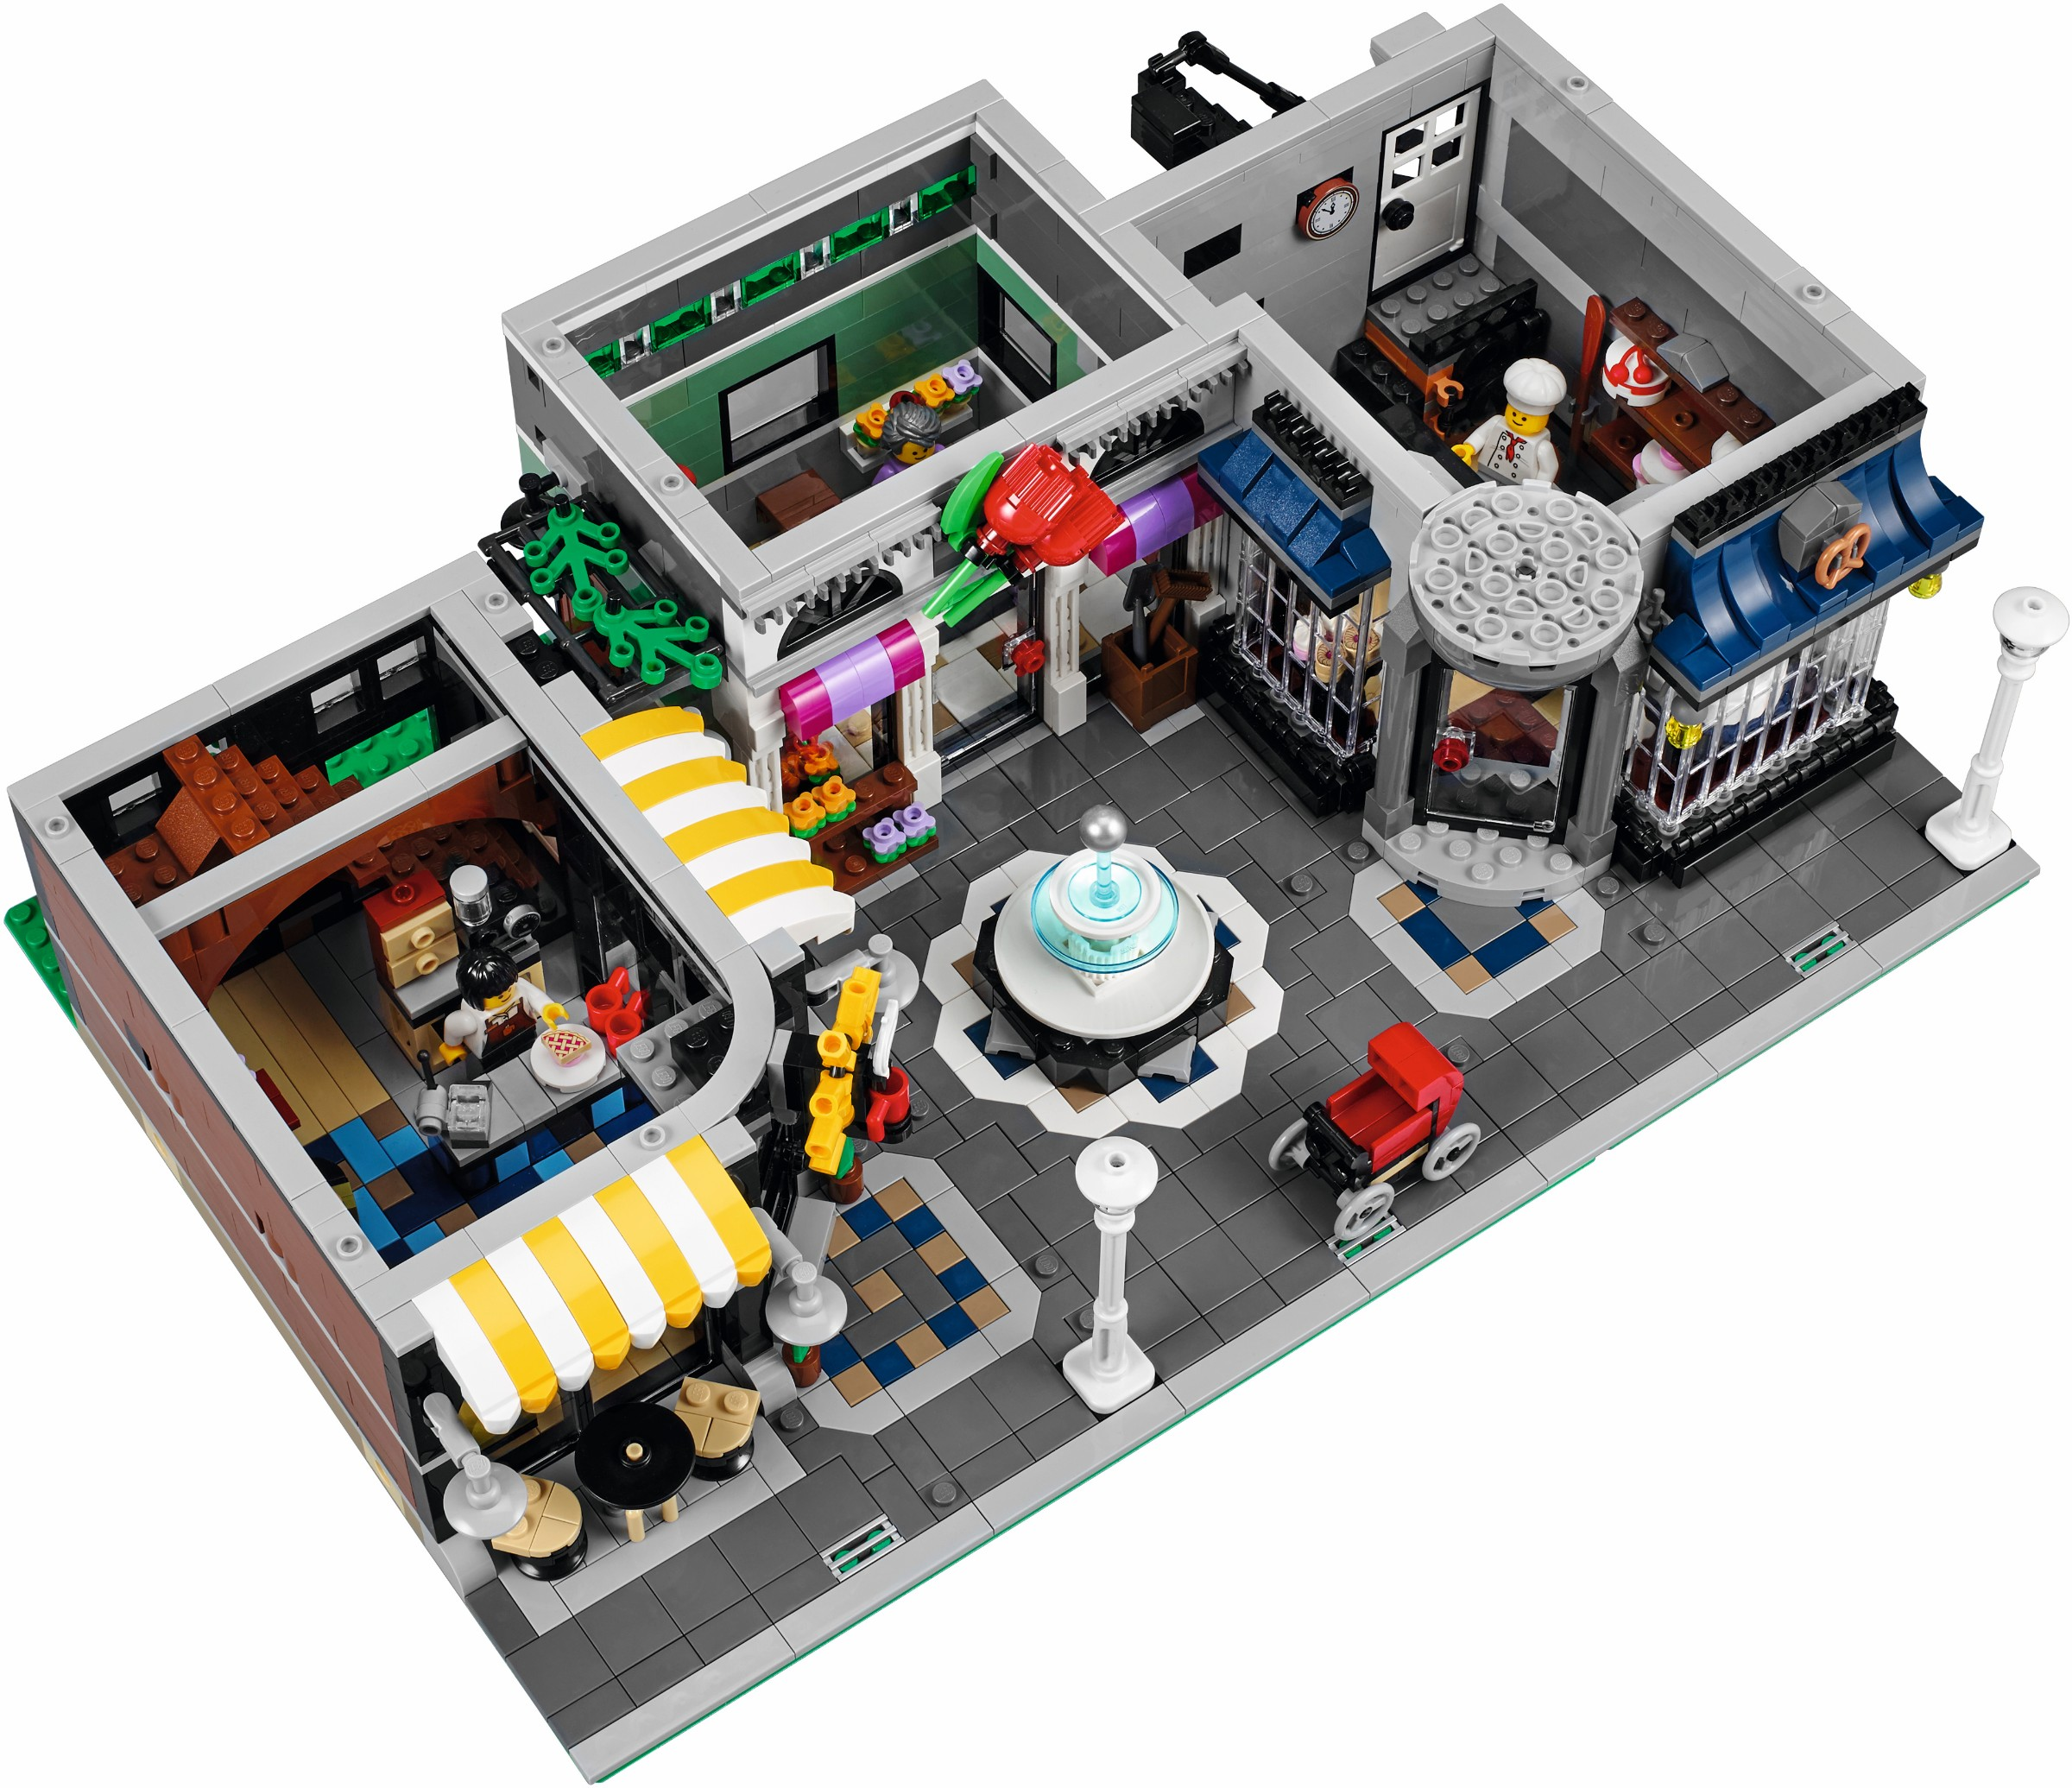 Lego 174 10255 Assembly Square Offiziell Vorgestellt Lego